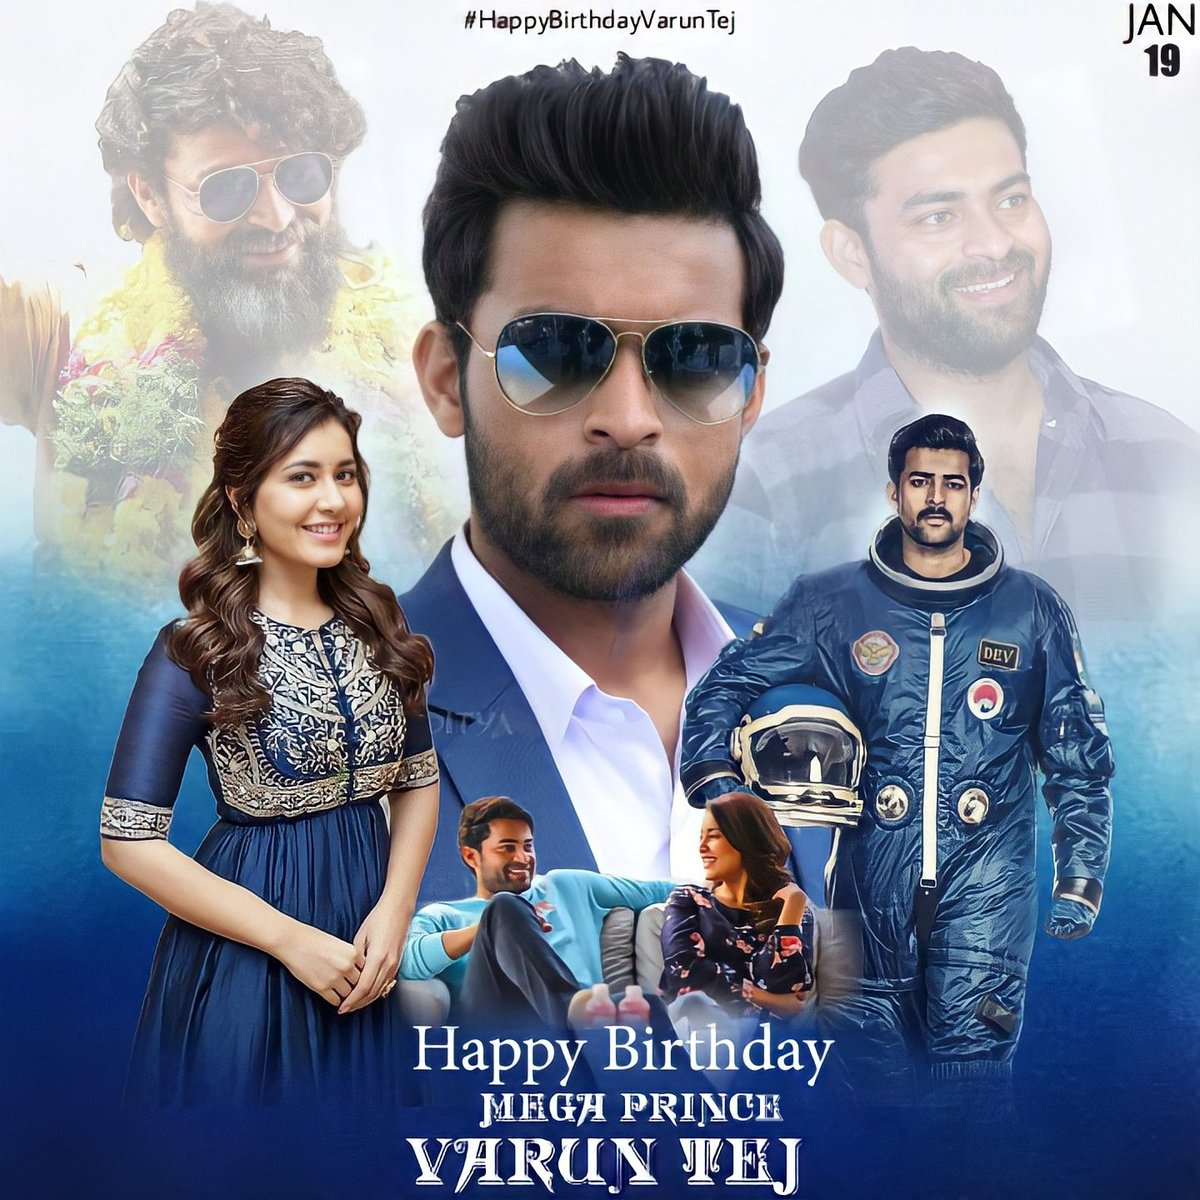 Happy Birthday @IAmVarunTej  Have Great Great This Year Anna You Have more than Entertainment film's Enjoy the All  💐💐💐💐💐💐🎂🎂🎂🎂🥳🥳 Wish from Gorgeous girl @RaashiKhanna & @RaashiPage  #RaashiKhanna #IAmvaruntej #birthday #Celebration